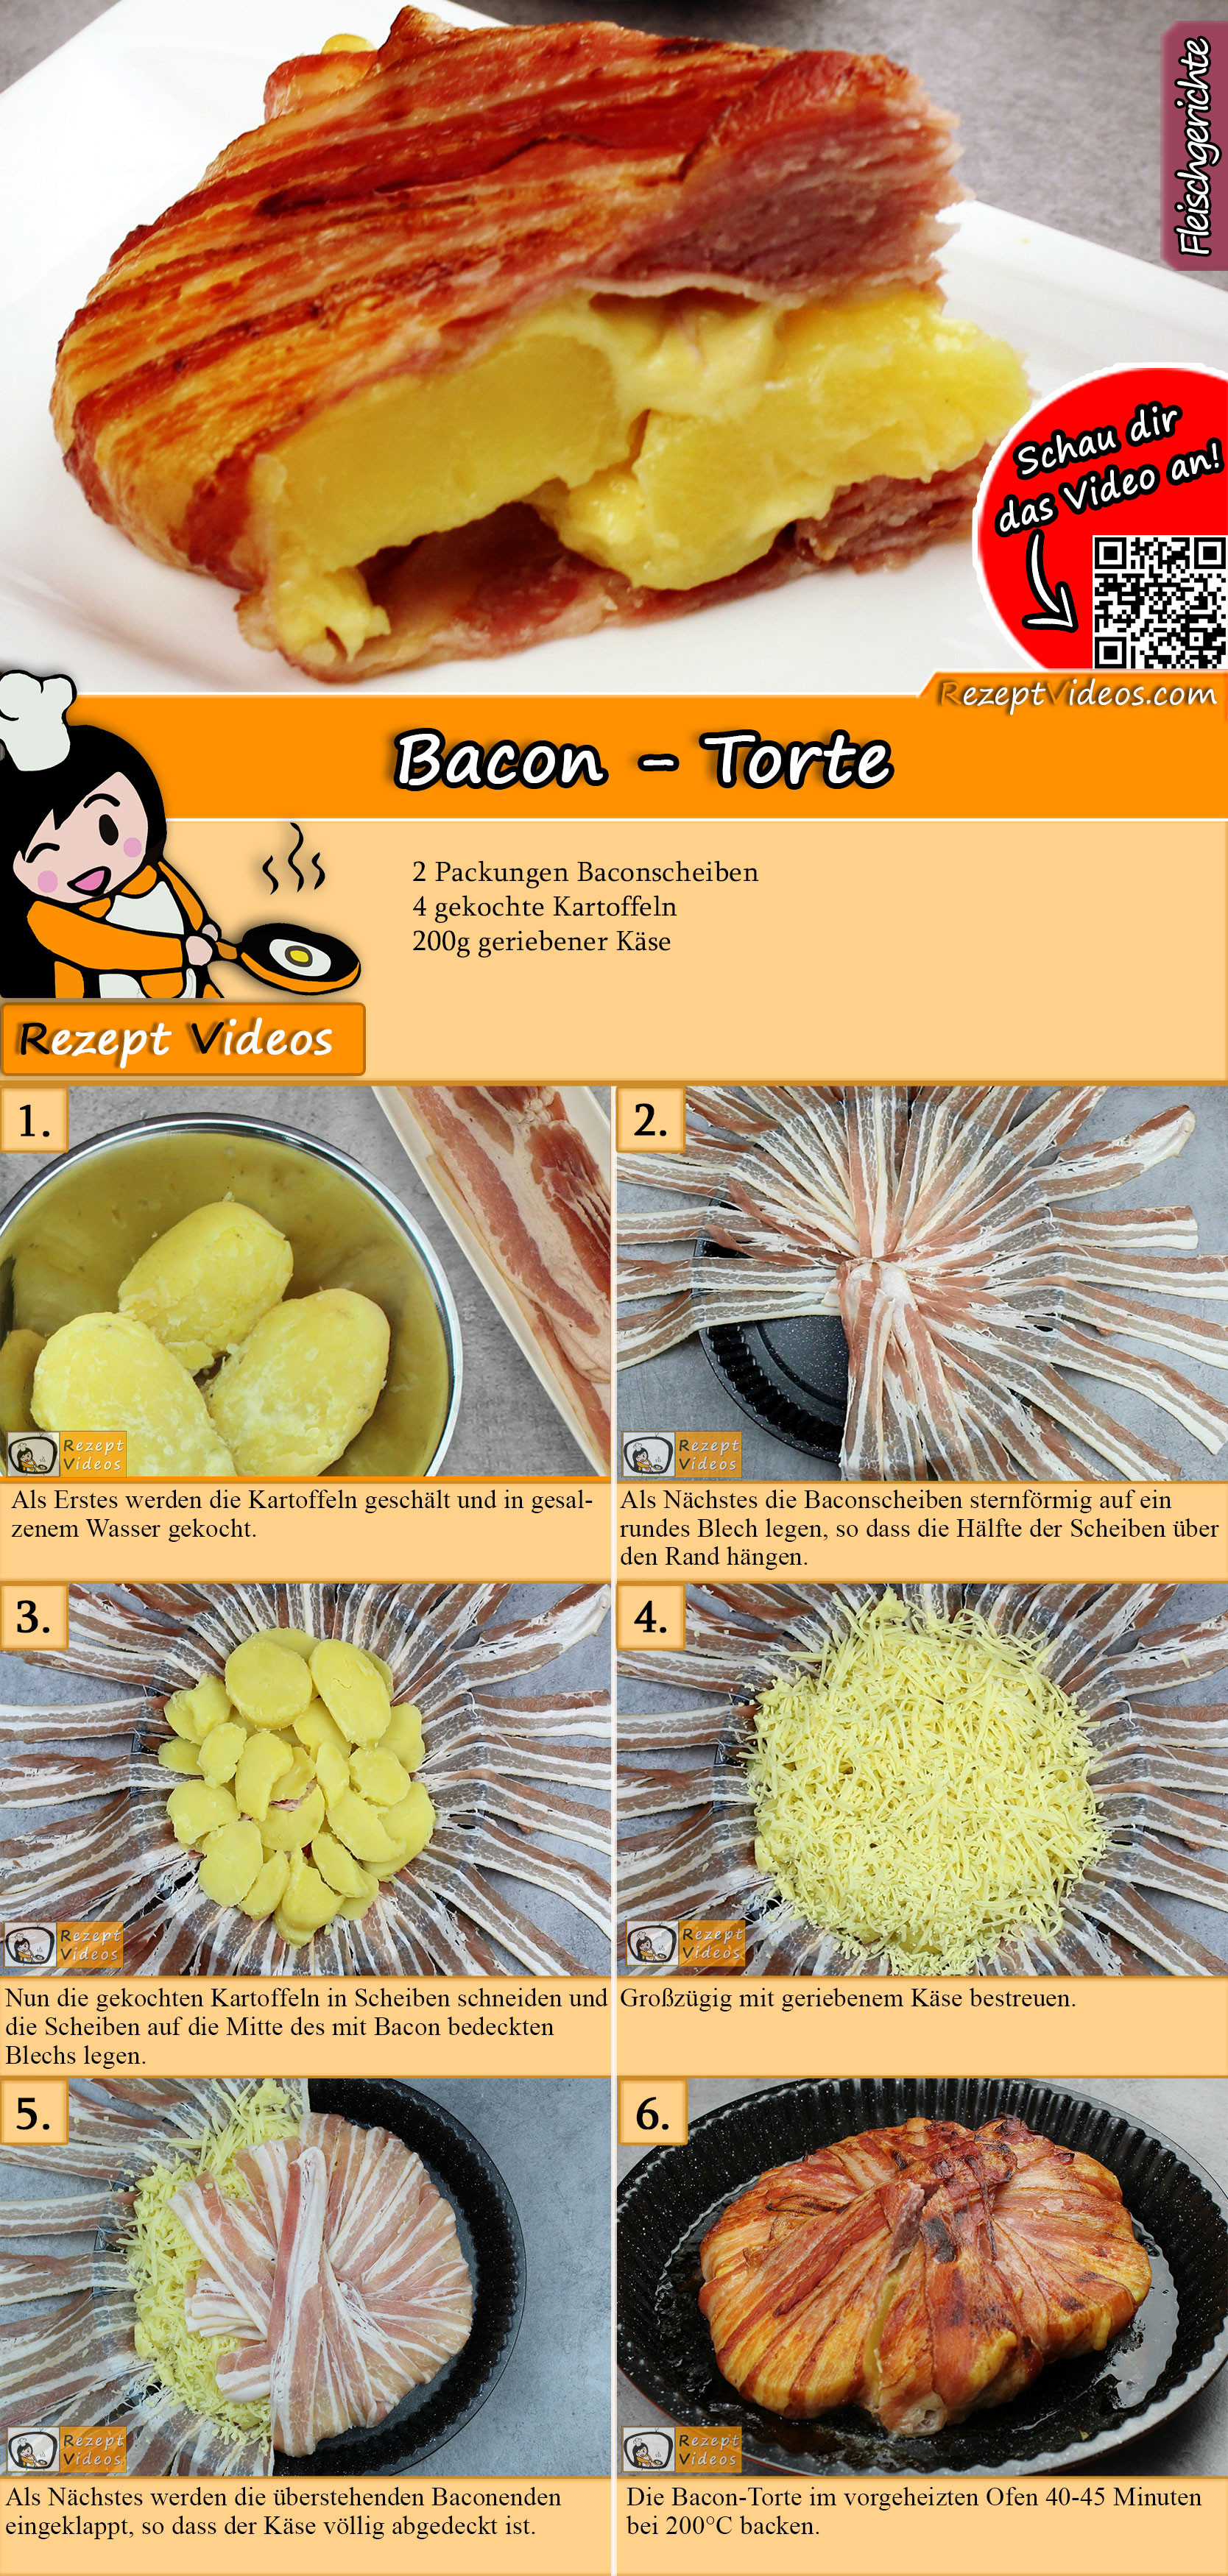 Bacon-Torte Rezept mit Video